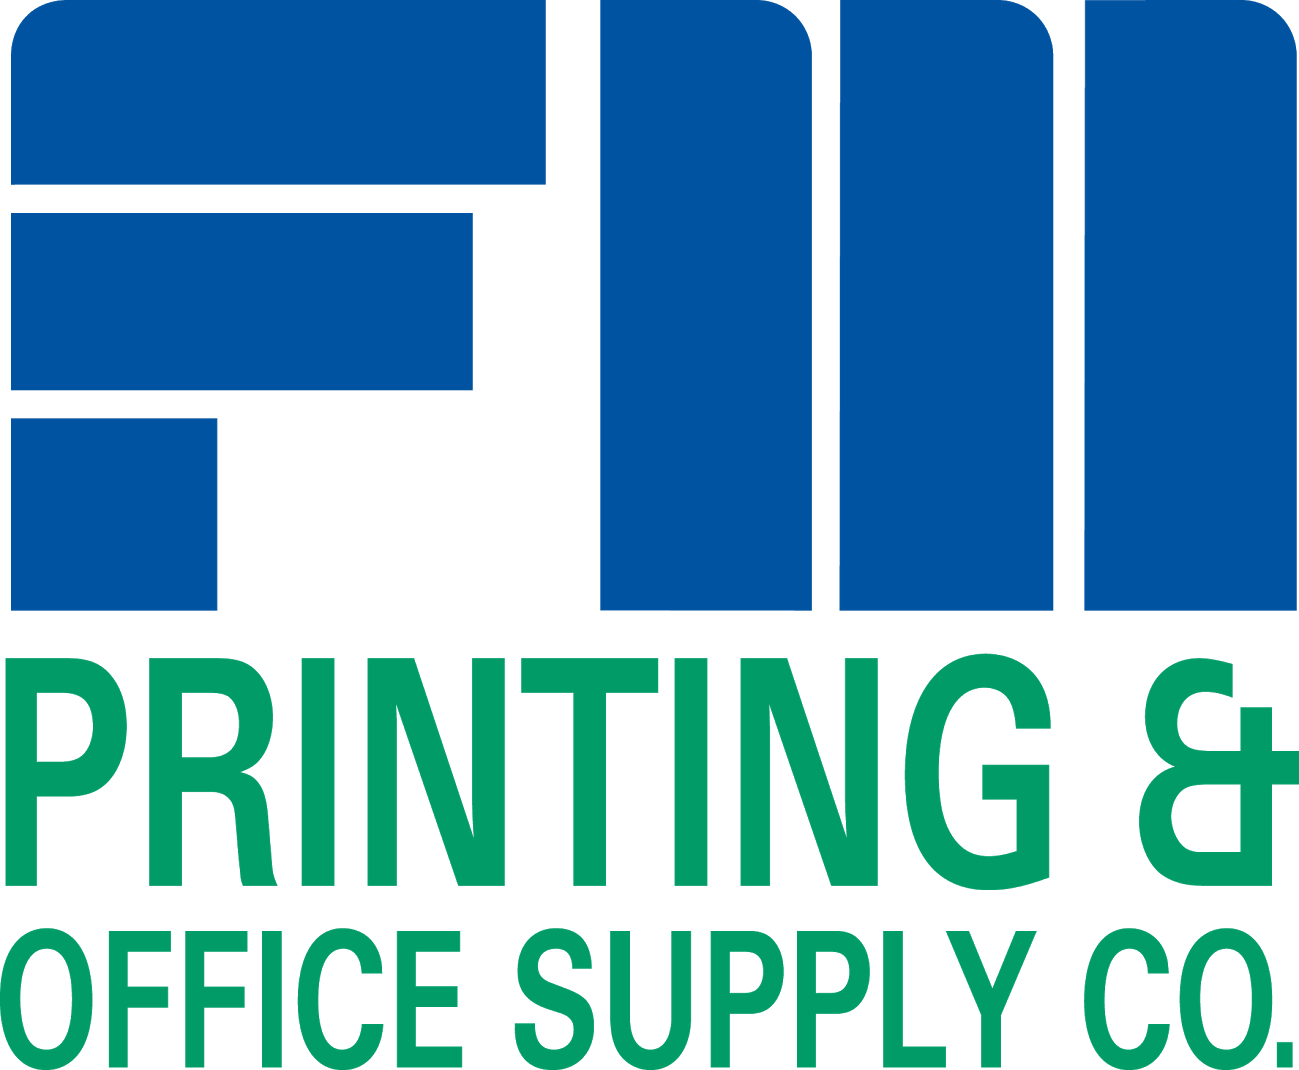 FM Printing & Office Supply Co.